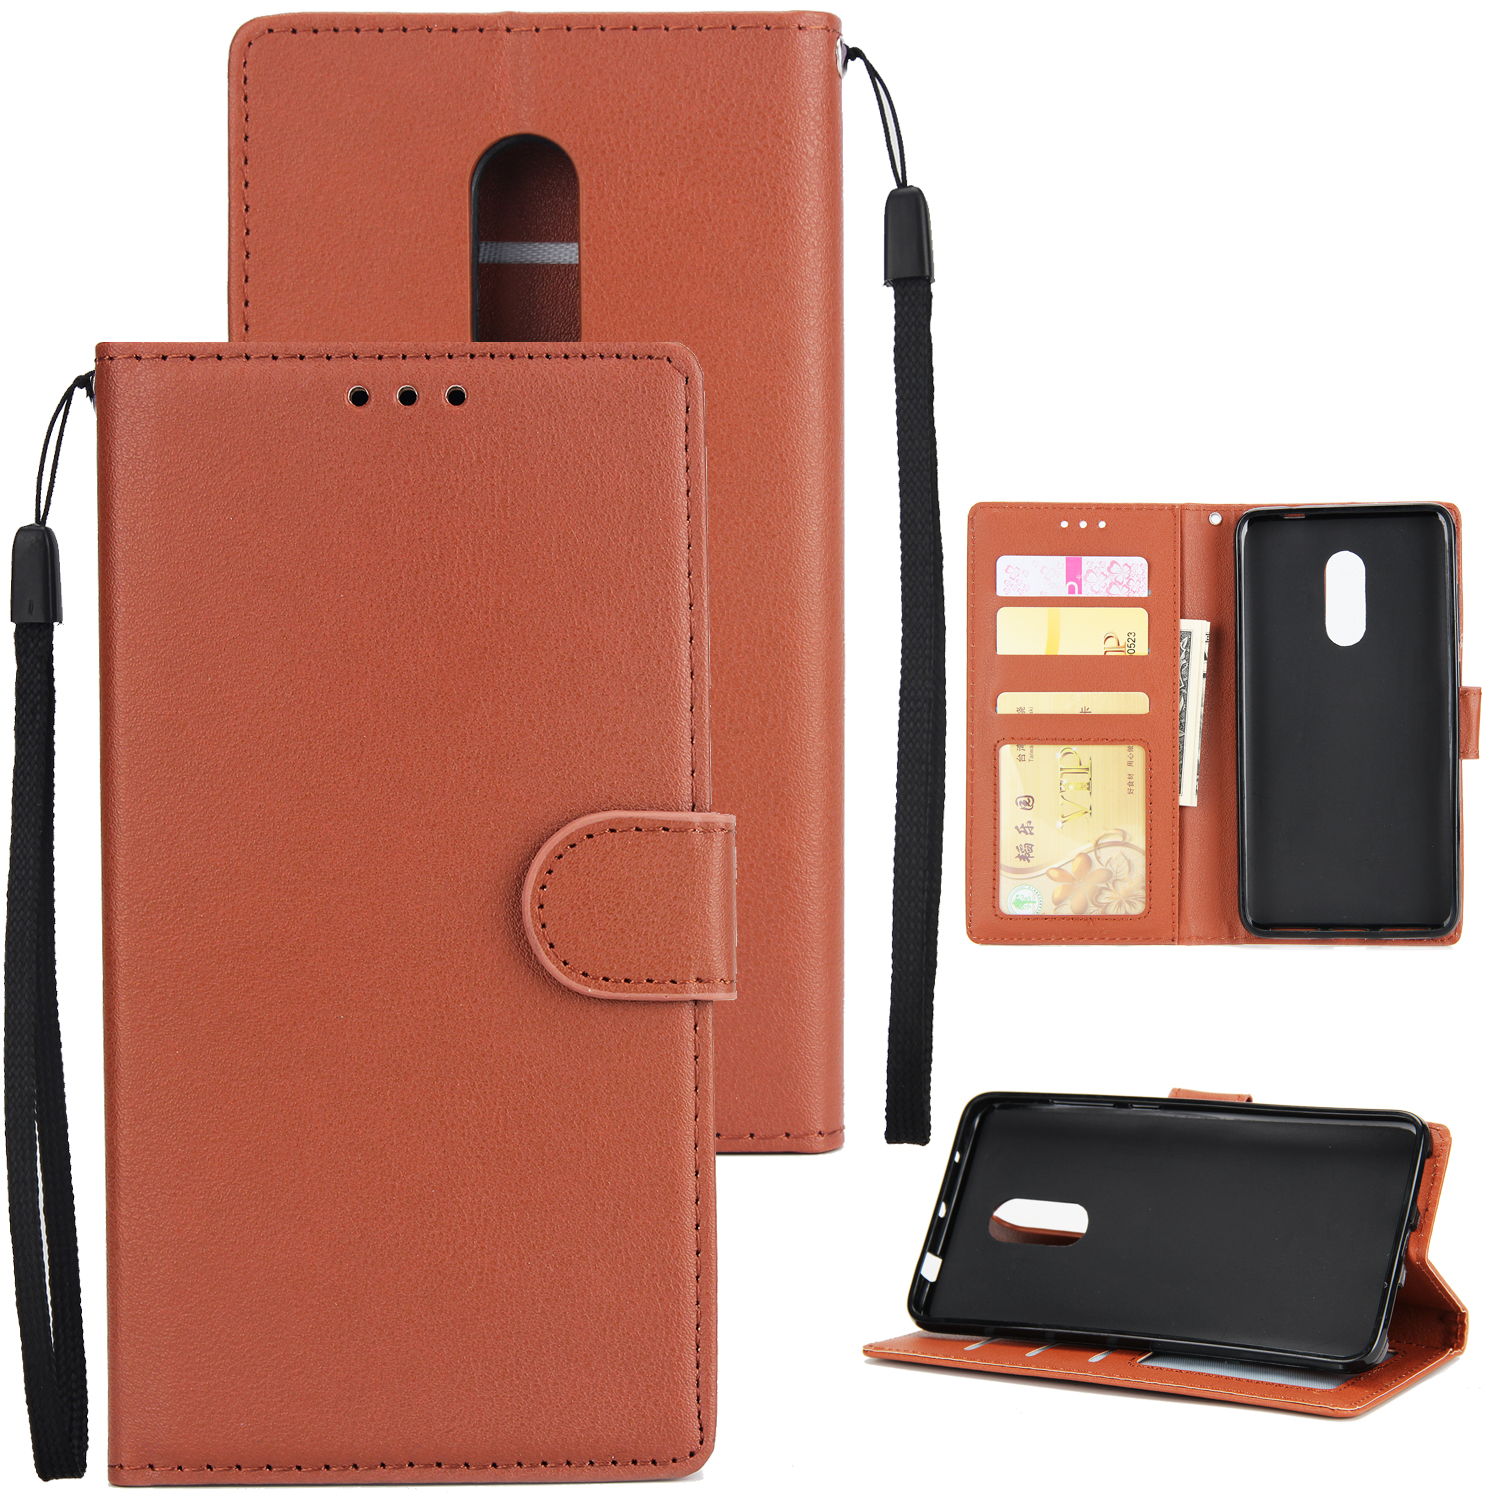 Ultra Slim PU Full Protective Cover Non-slip Shockproof Cell Phone Case with Card Slot for Xiaomi Redmi note 4 brown